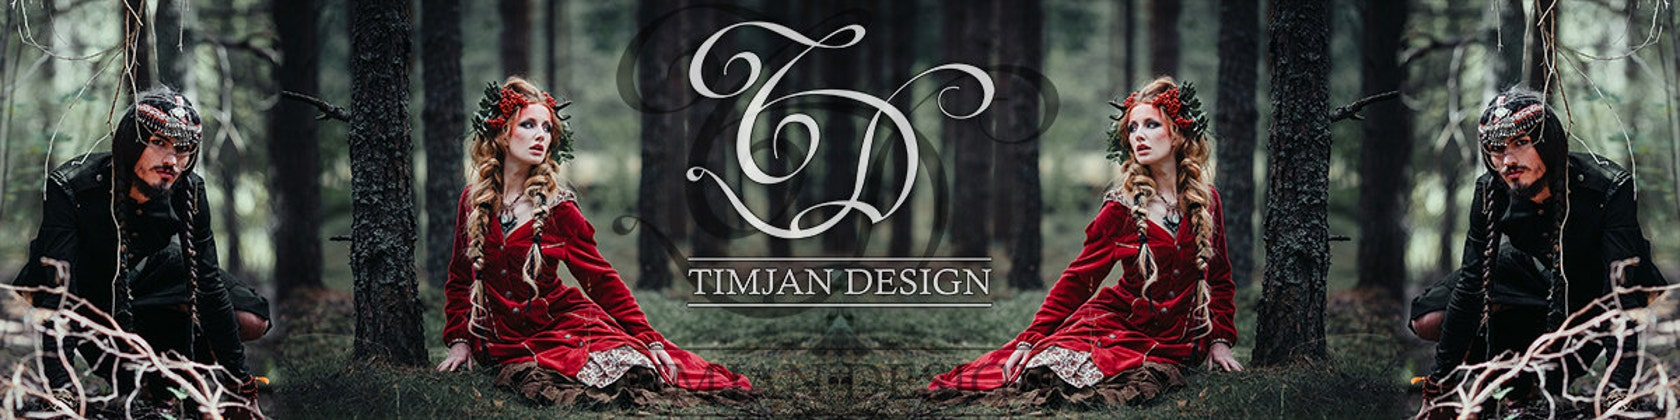 timjan design supernatural wear by timjandesign on etsy